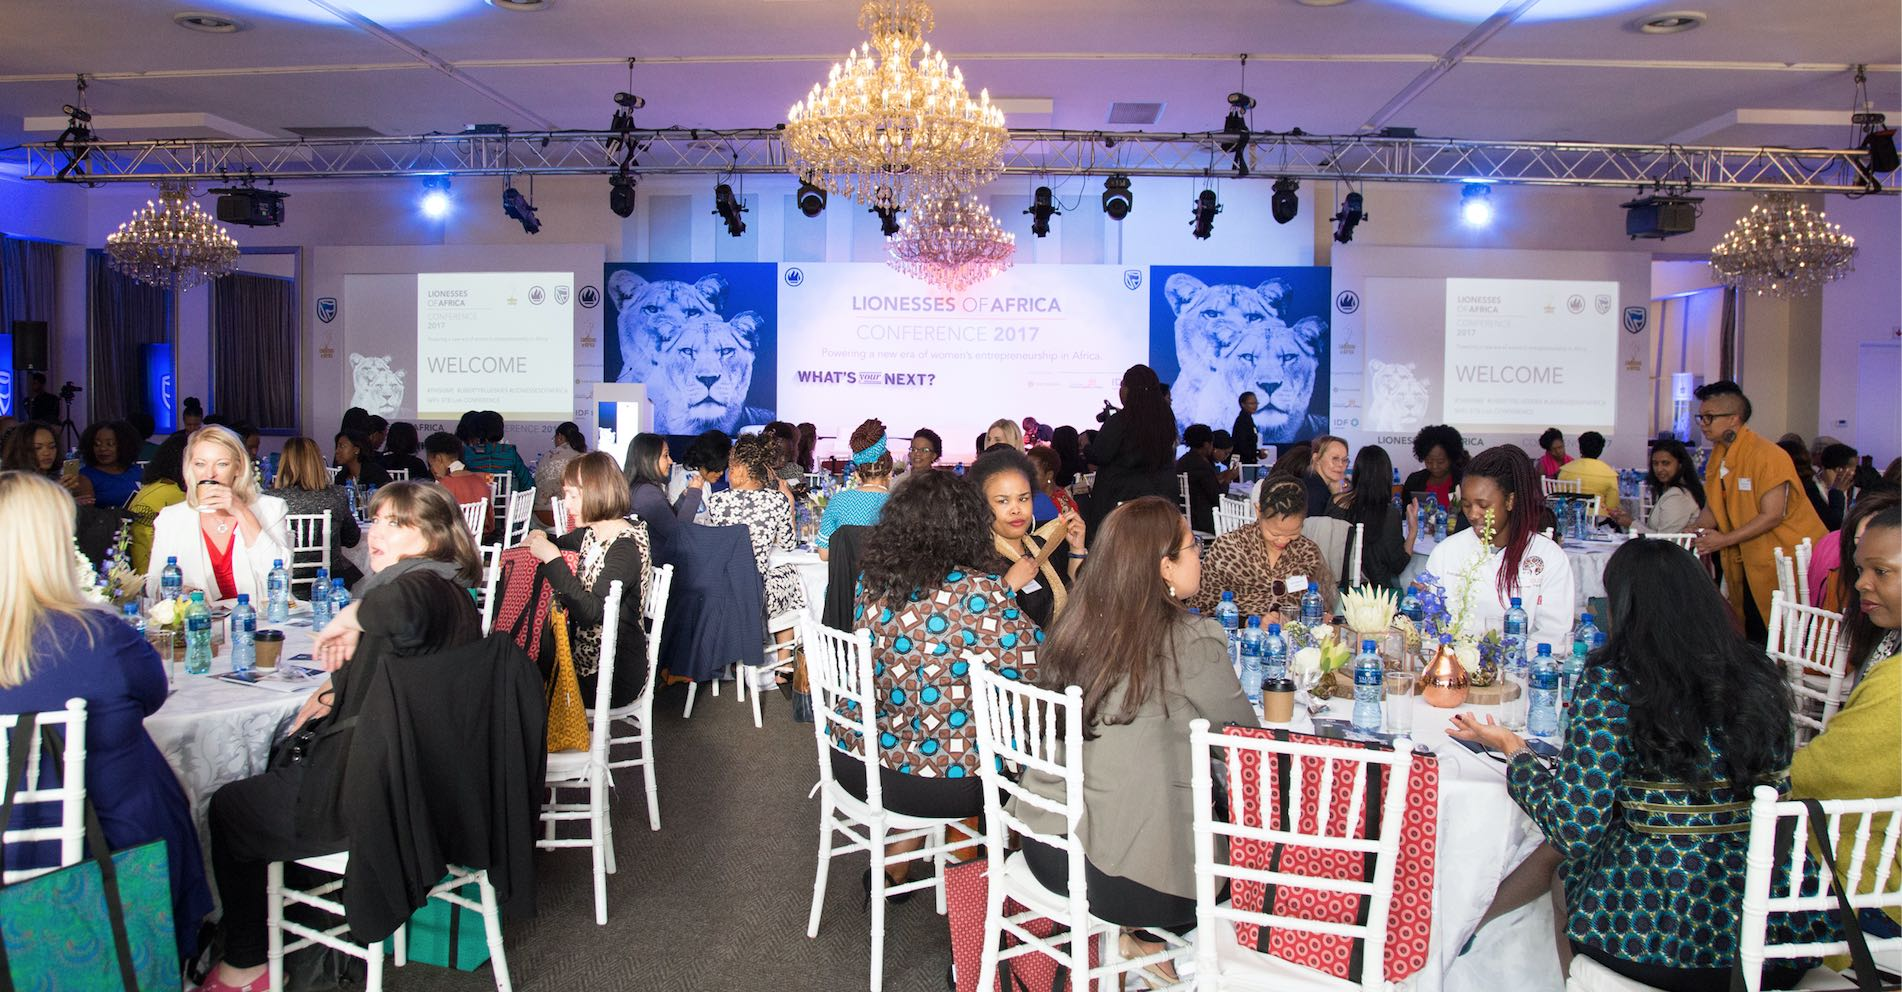 Lionesses of Africa Annual Conference 2017 -